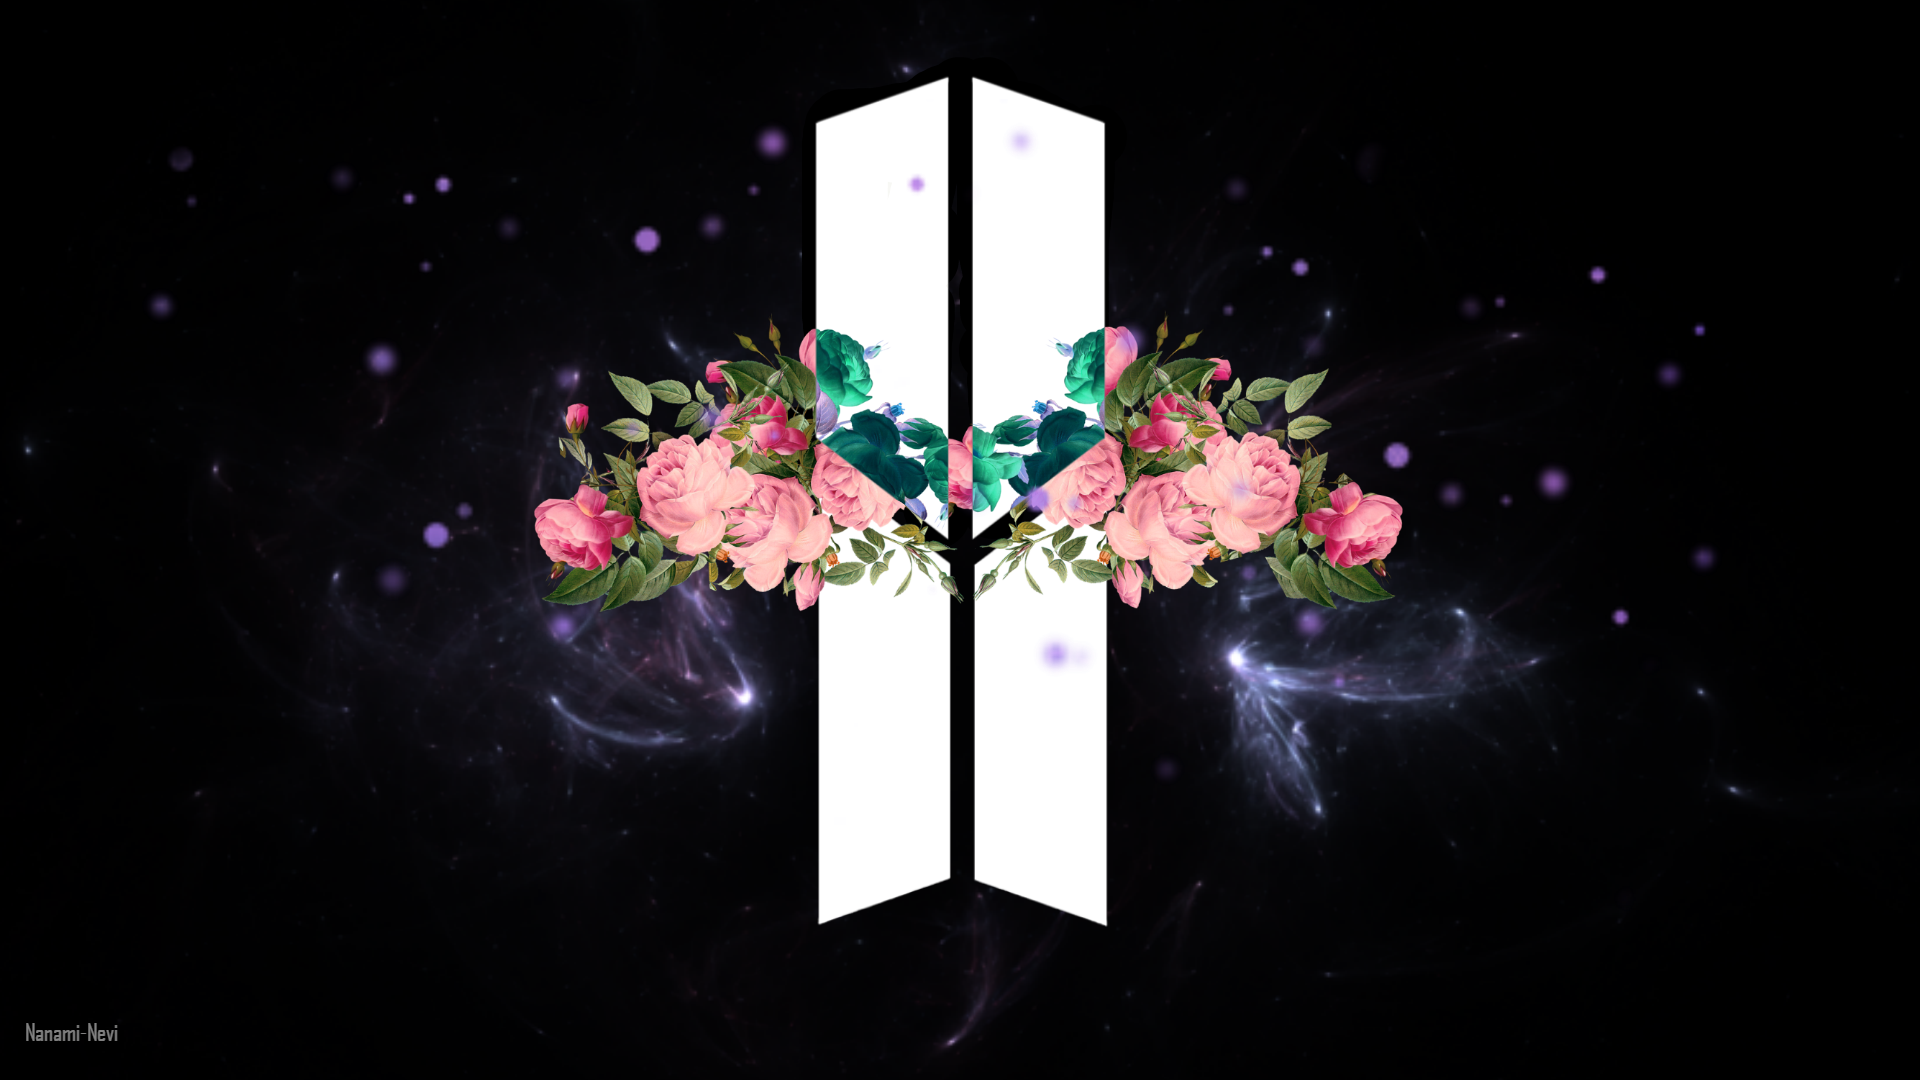 My Creation For New Bts Logo Wallpaper Pc 1920x1080 Wallpaper